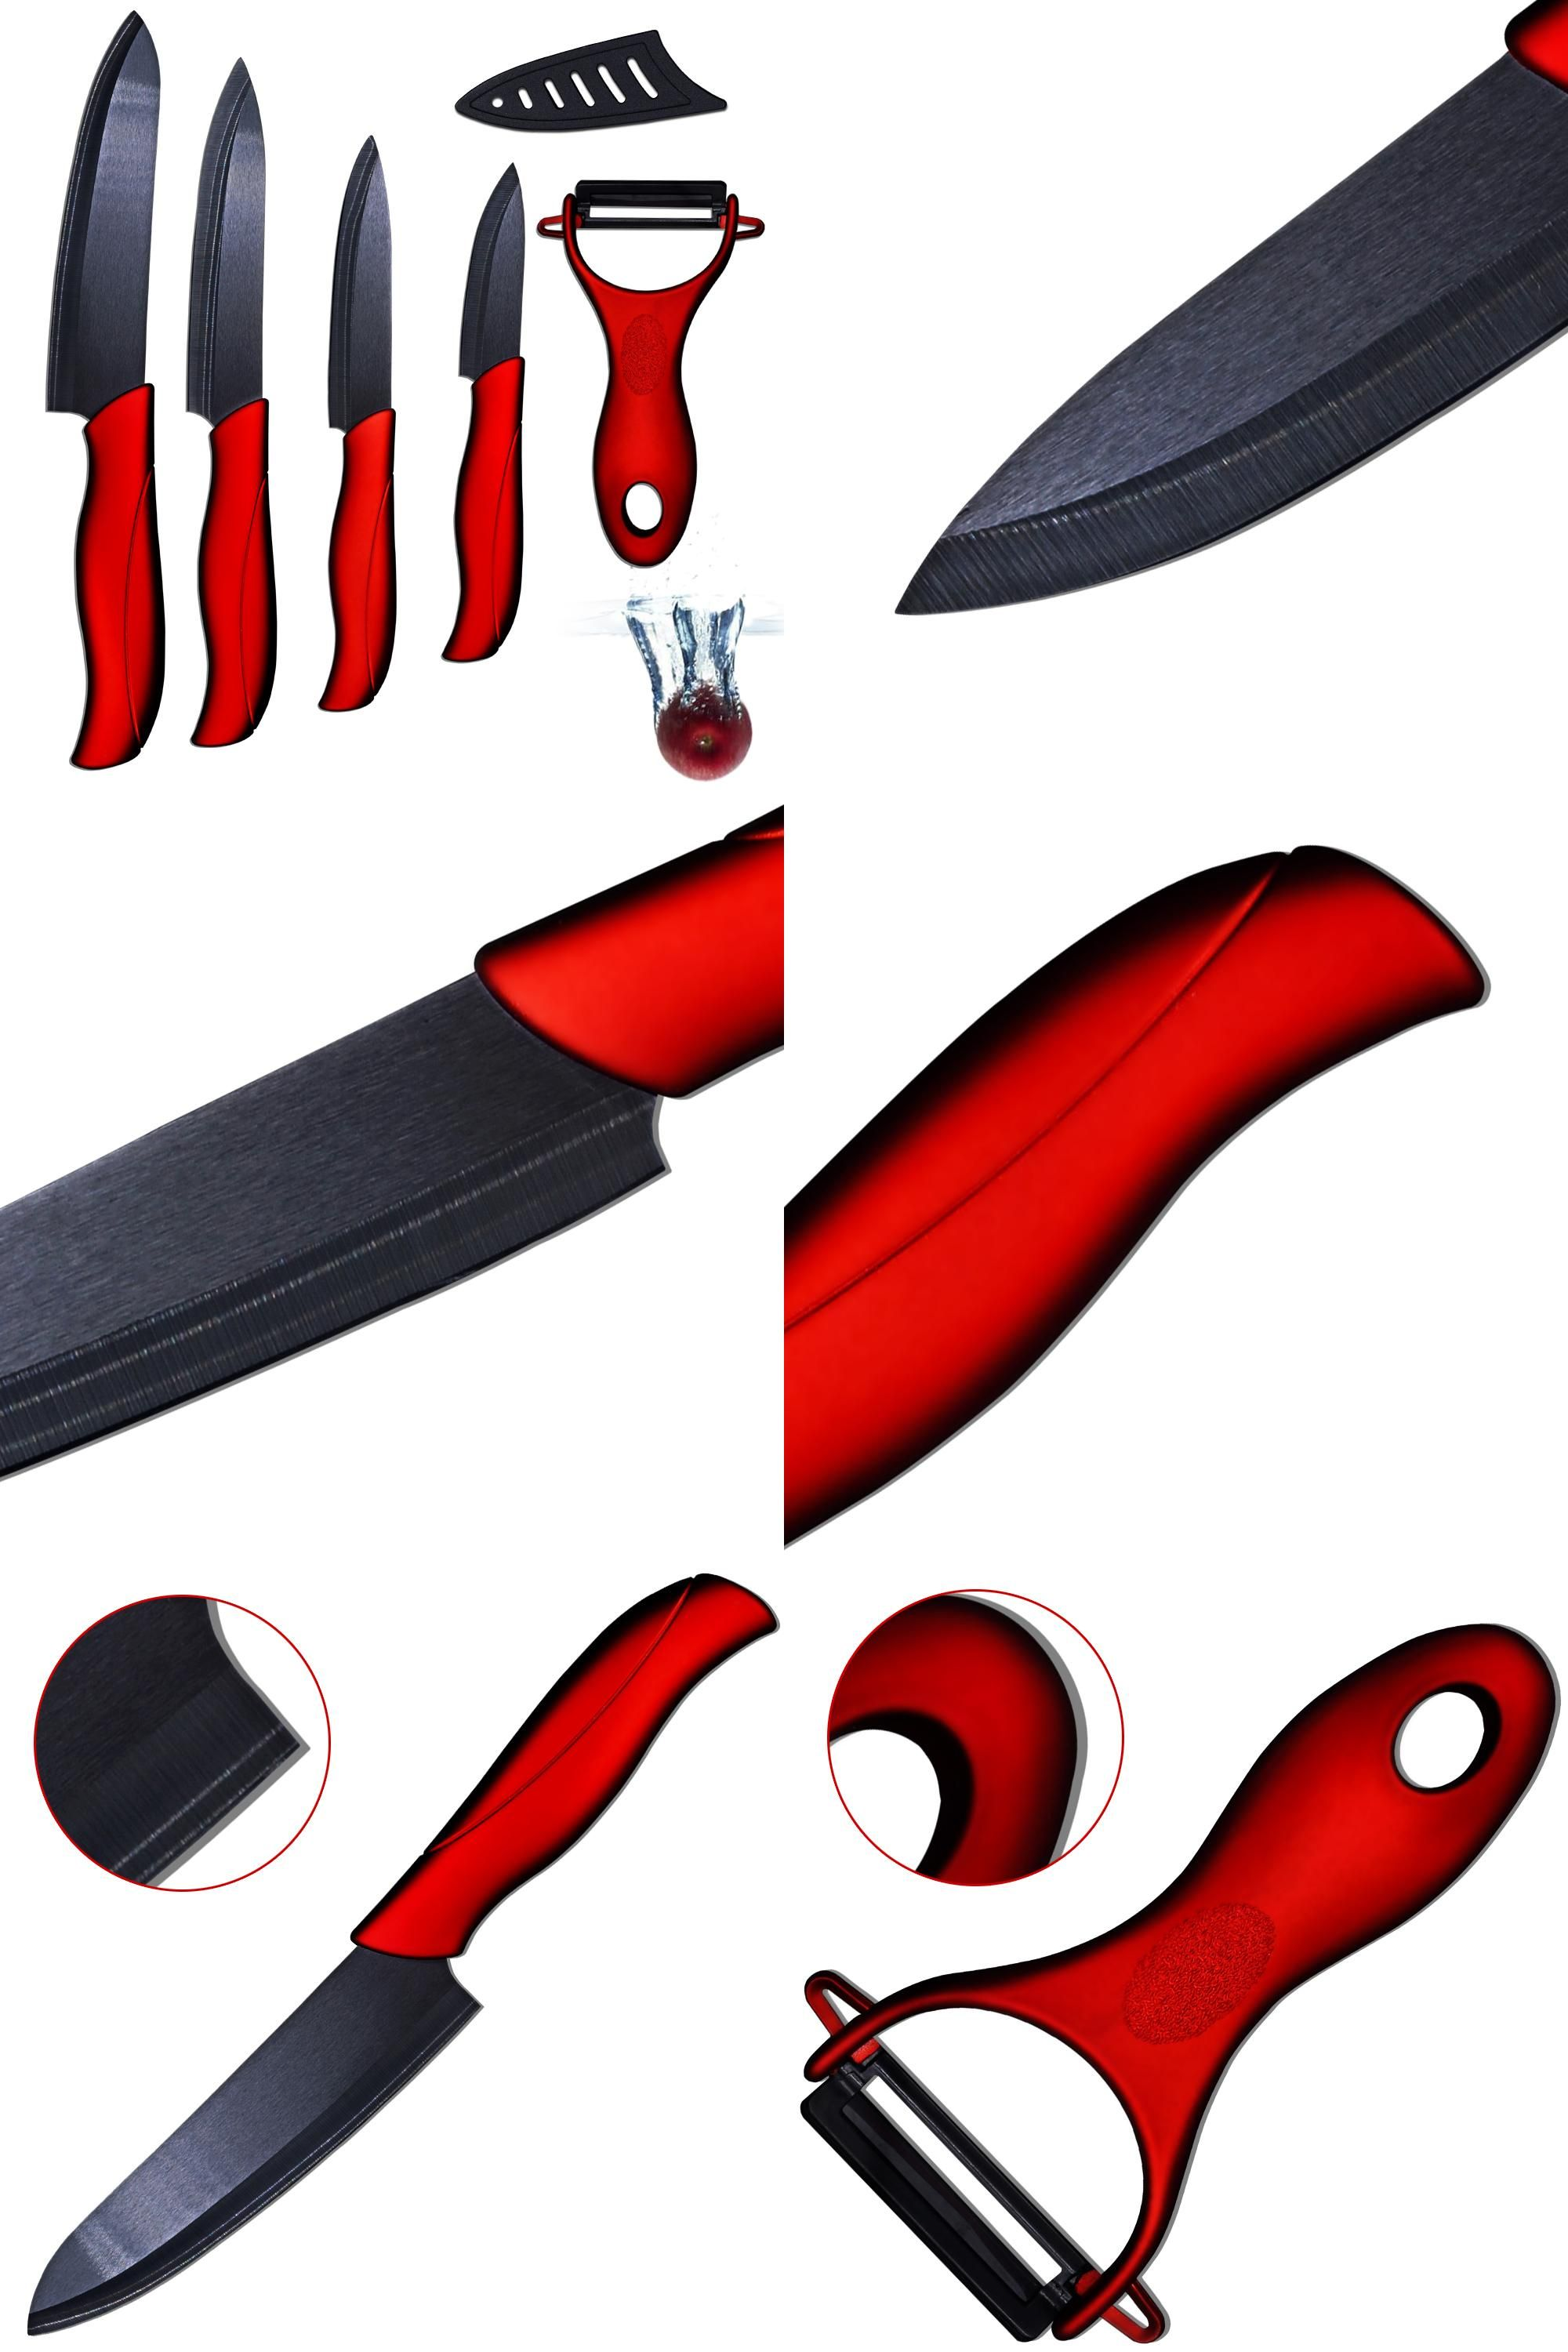 Visit To Buy Ceramic Knife 3 Paring 4 Utility 5 Slicing 6 Chef Knife And One Sharp Black Balde Red Handl Ceramic Knife Knife Set Kitchen Kitchen Knives